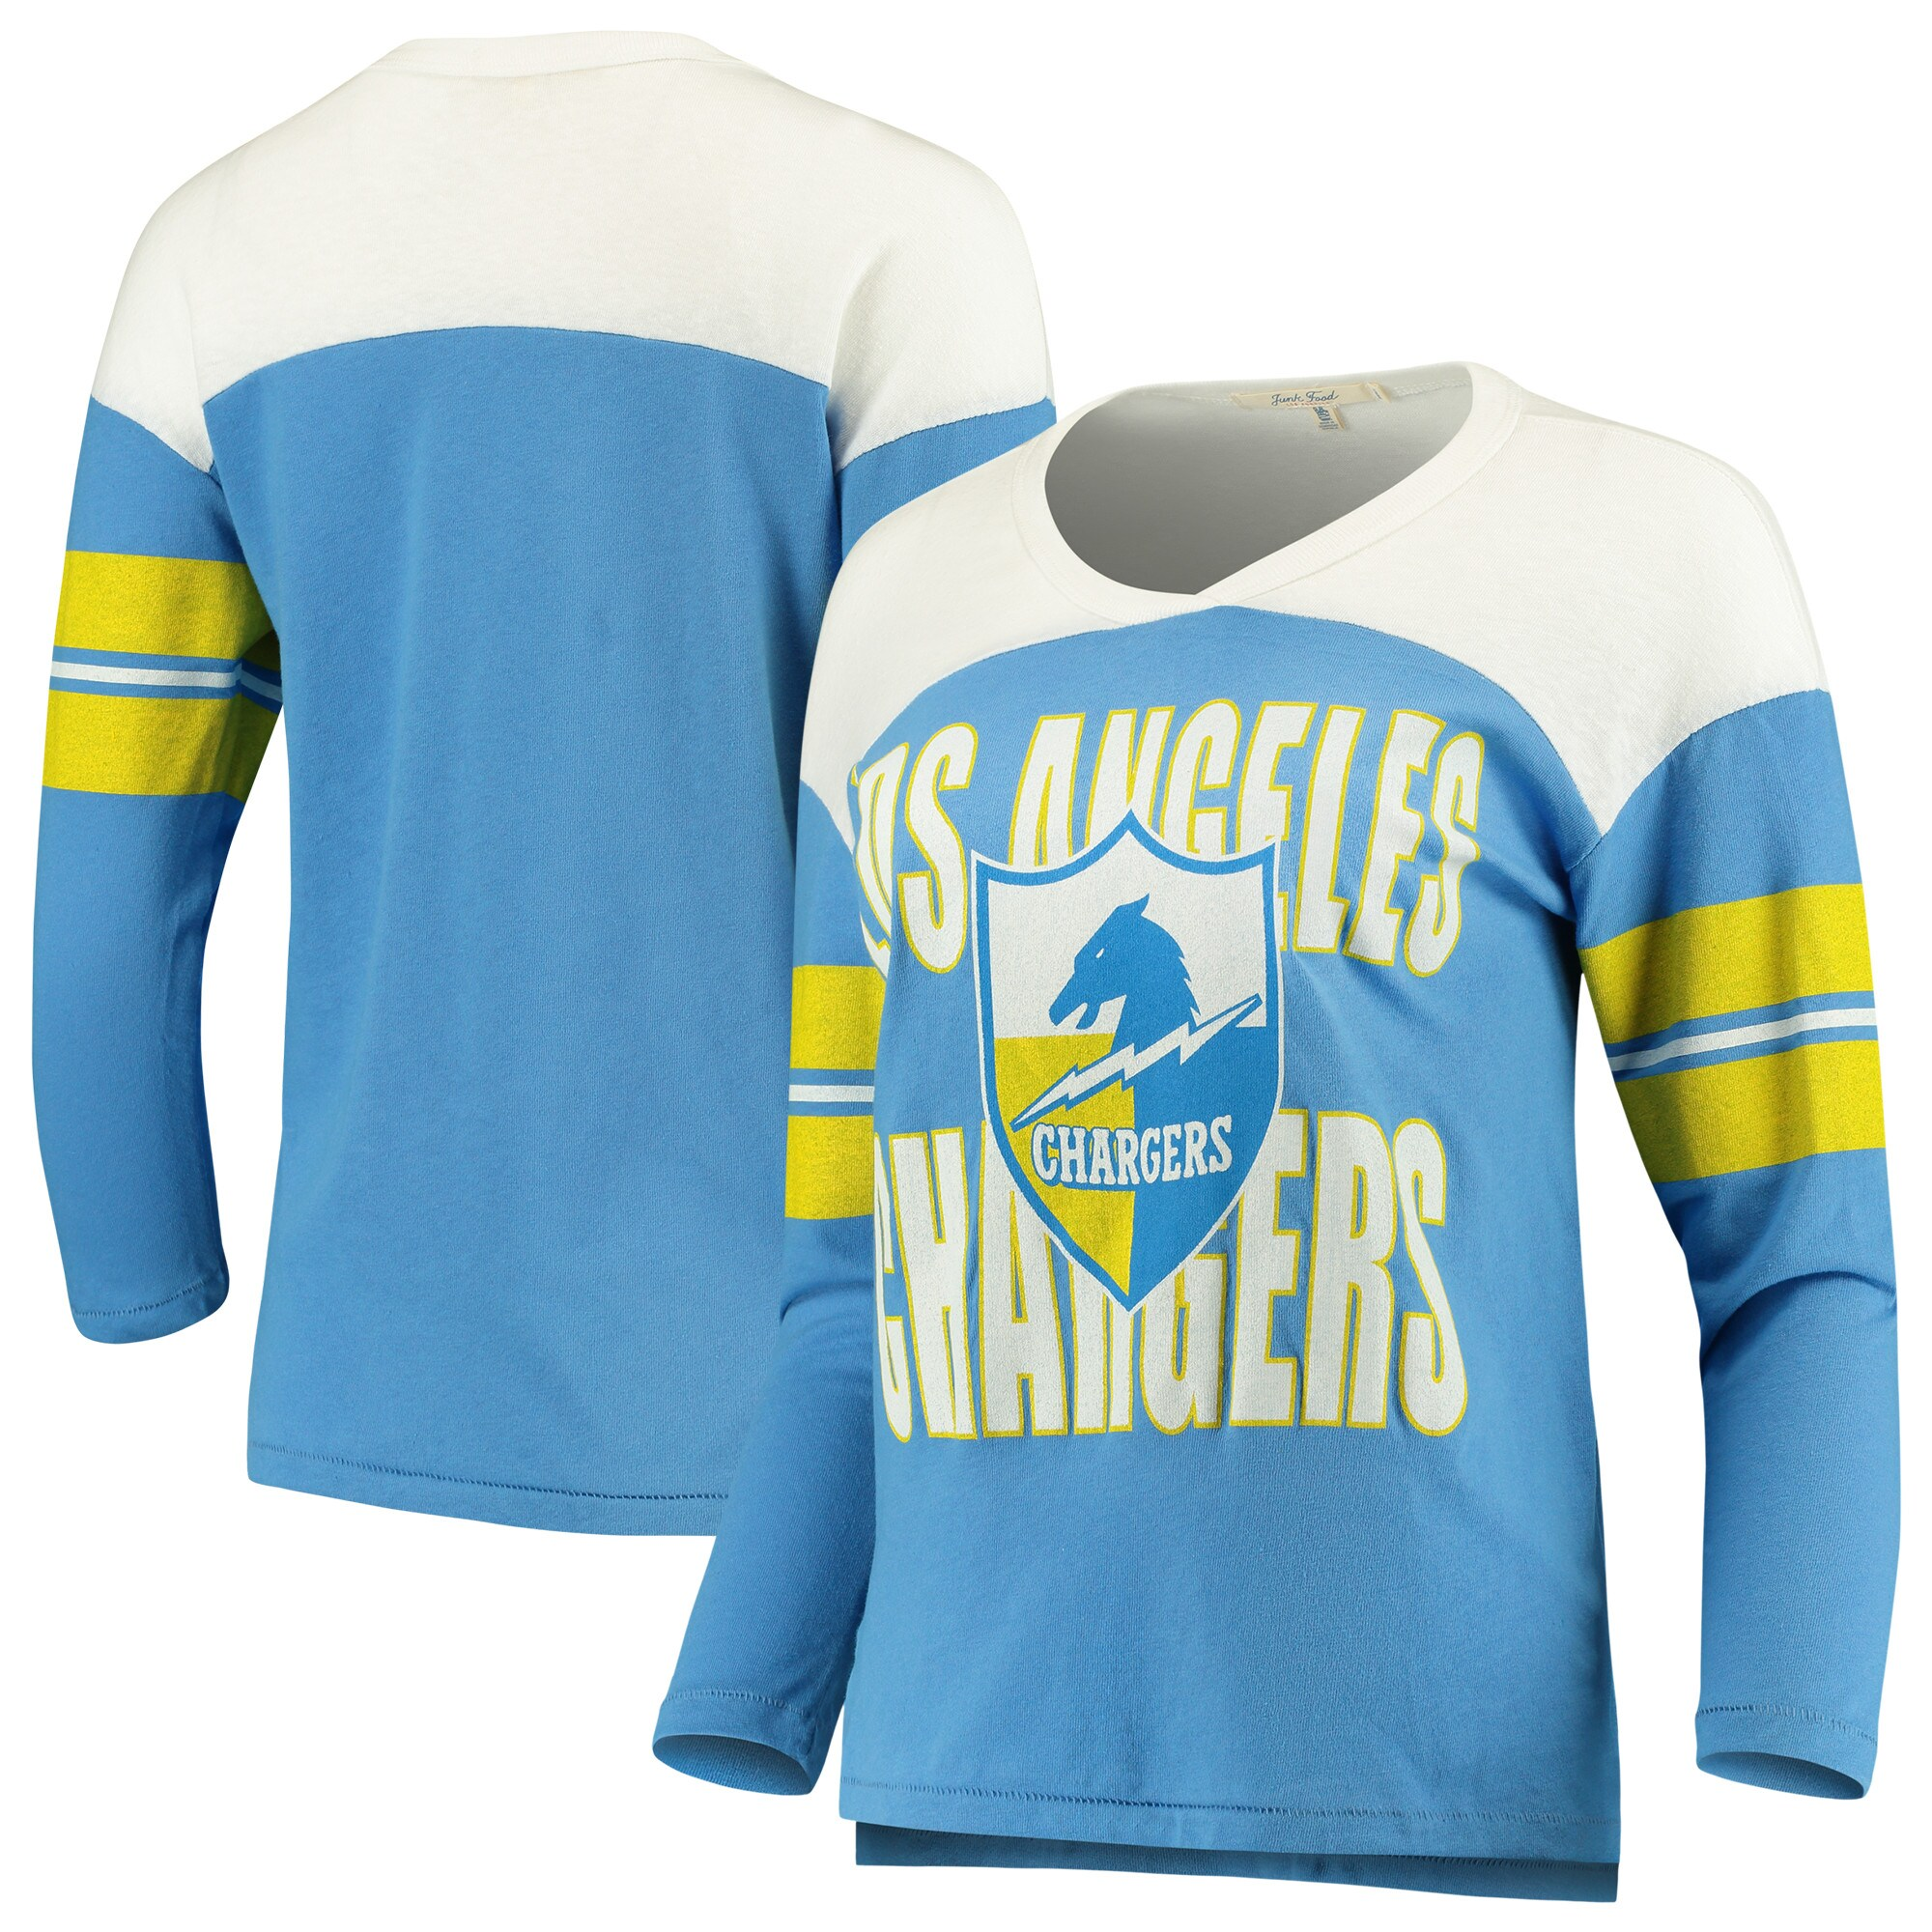 Los Angeles Chargers Junk Food Women's Throwback Football Long Sleeve T-Shirt - Powder Blue/White